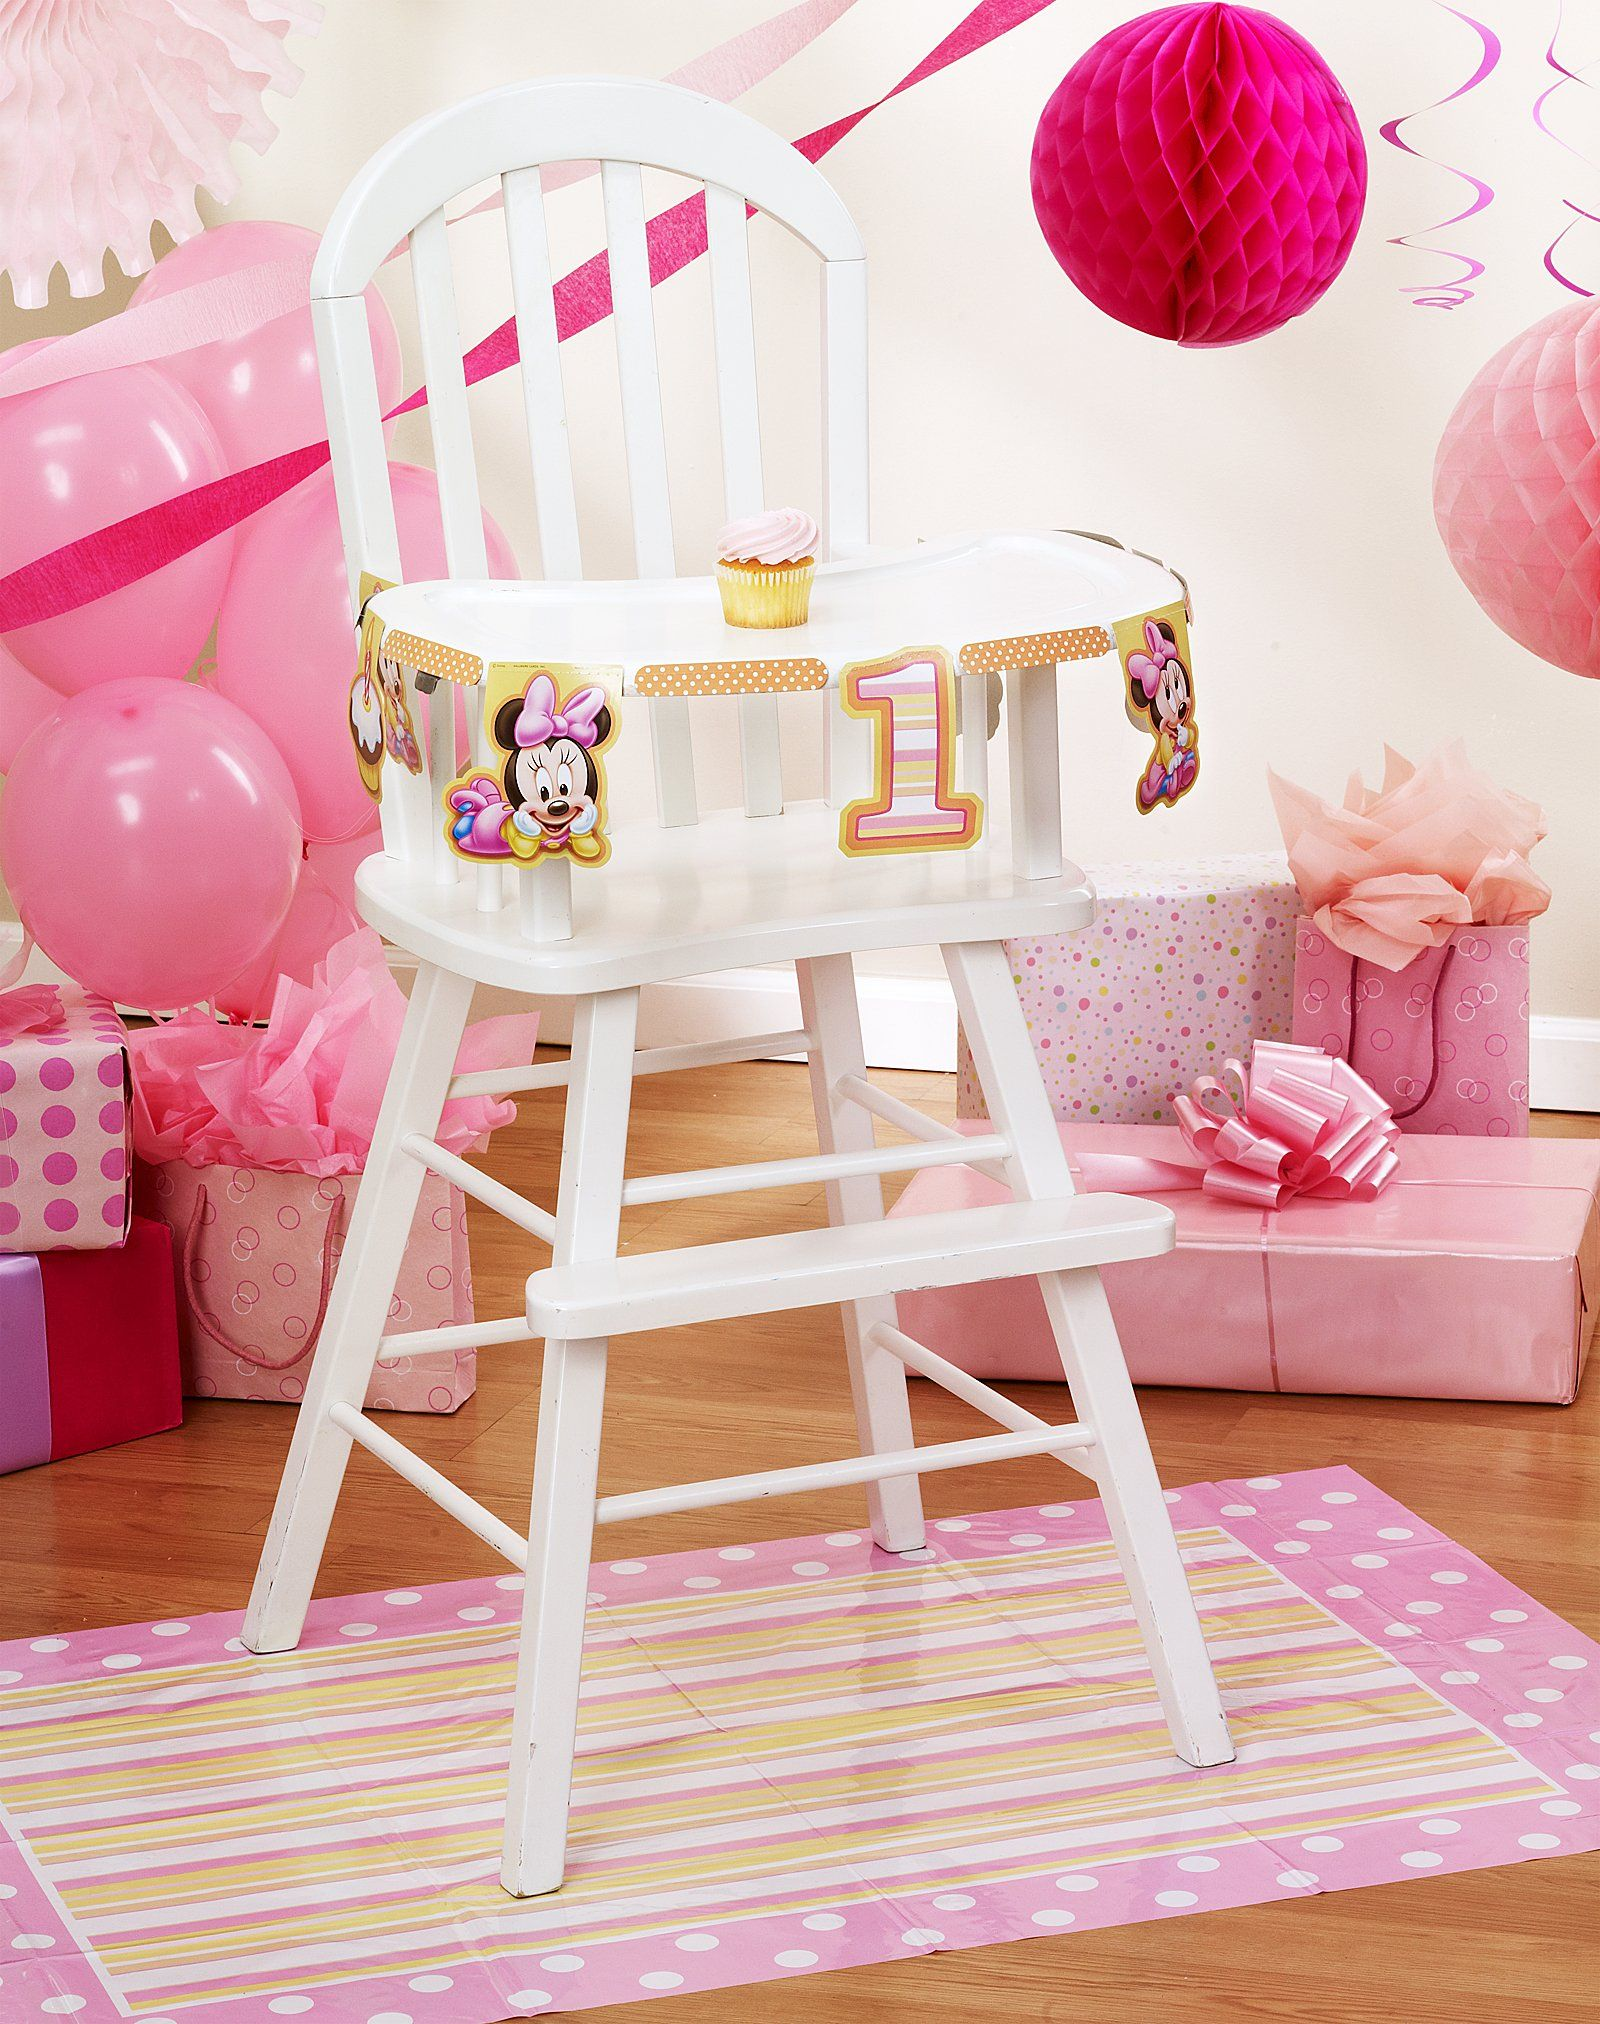 Astounding Disney Minnies 1St Birthday High Chair Decorating Kit Download Free Architecture Designs Intelgarnamadebymaigaardcom